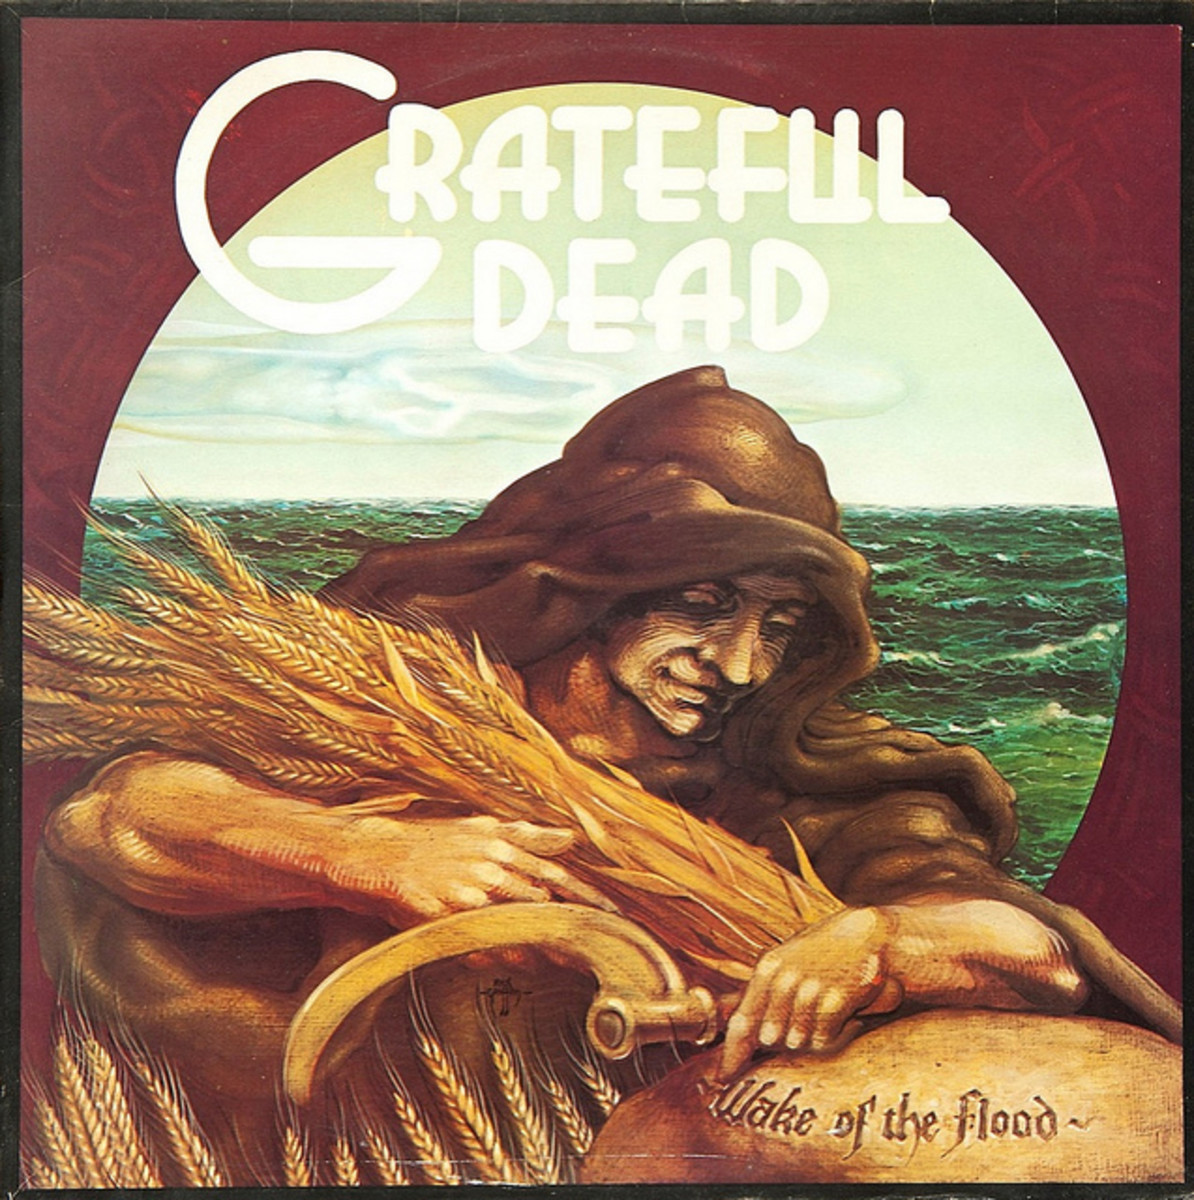 "Grateful Dead ""Wake Of the Flood"" Grateful Dead Records GD-01 12"" LP Vinyl Record, US Pressing (1973) Album Cover Art by Rick Griffin"